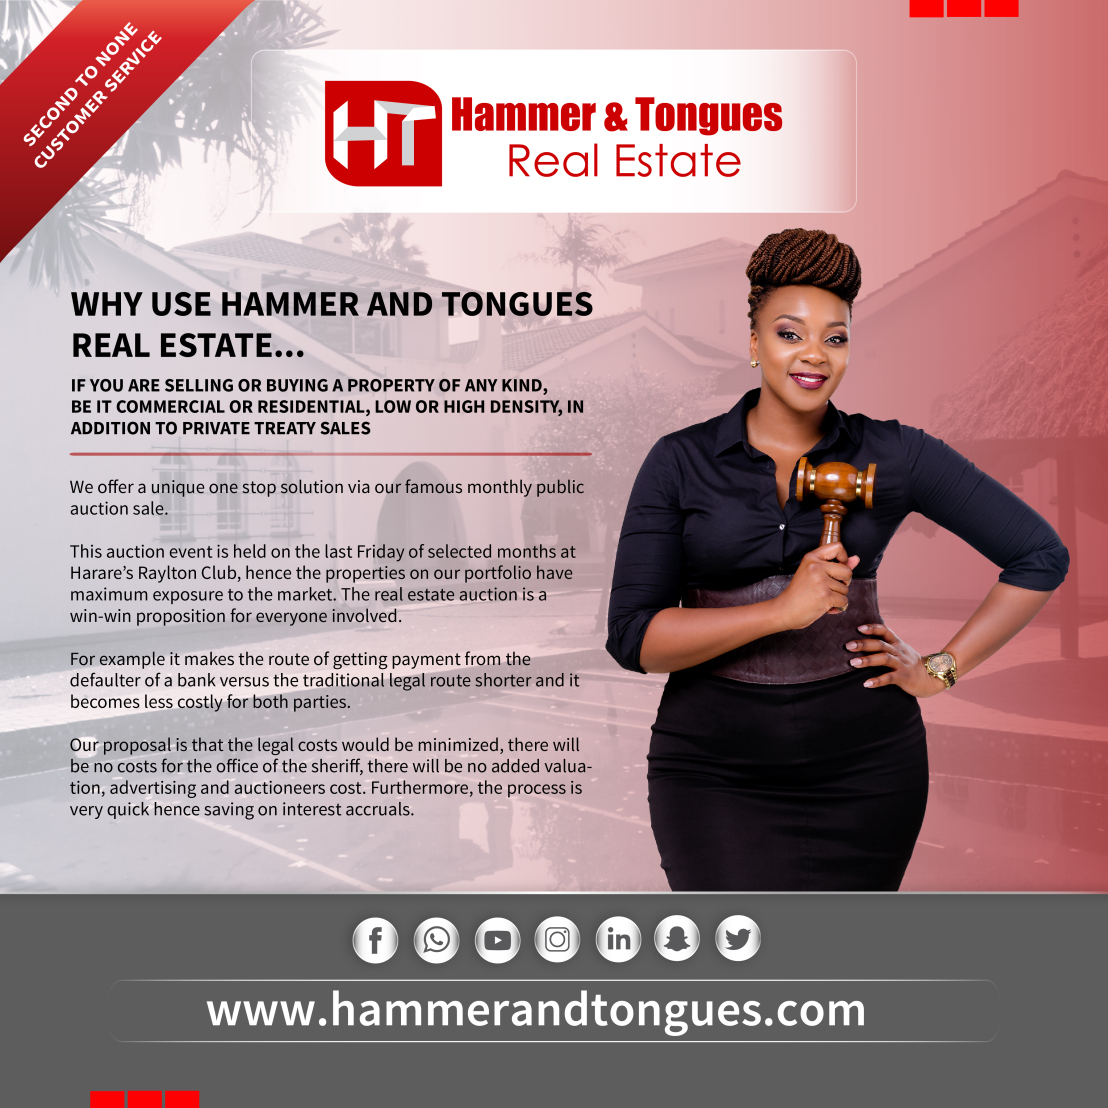 If it's about real estate, talk to us!